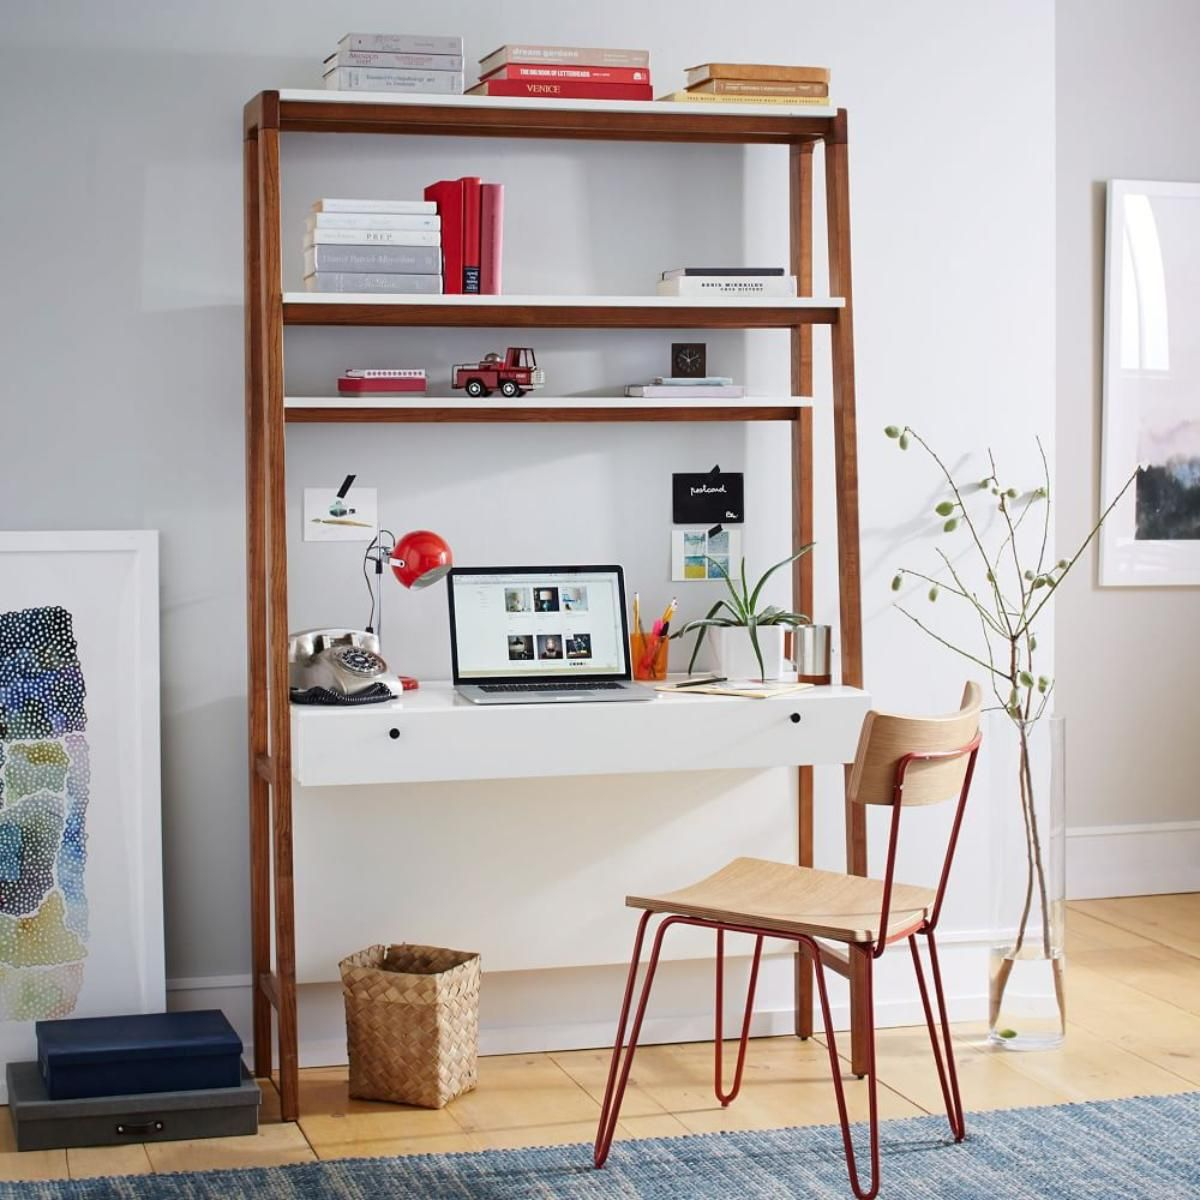 Inspired By Scandinavian Modernism Our Modern Wall Desk Pairs A Sleek Body With Pecan